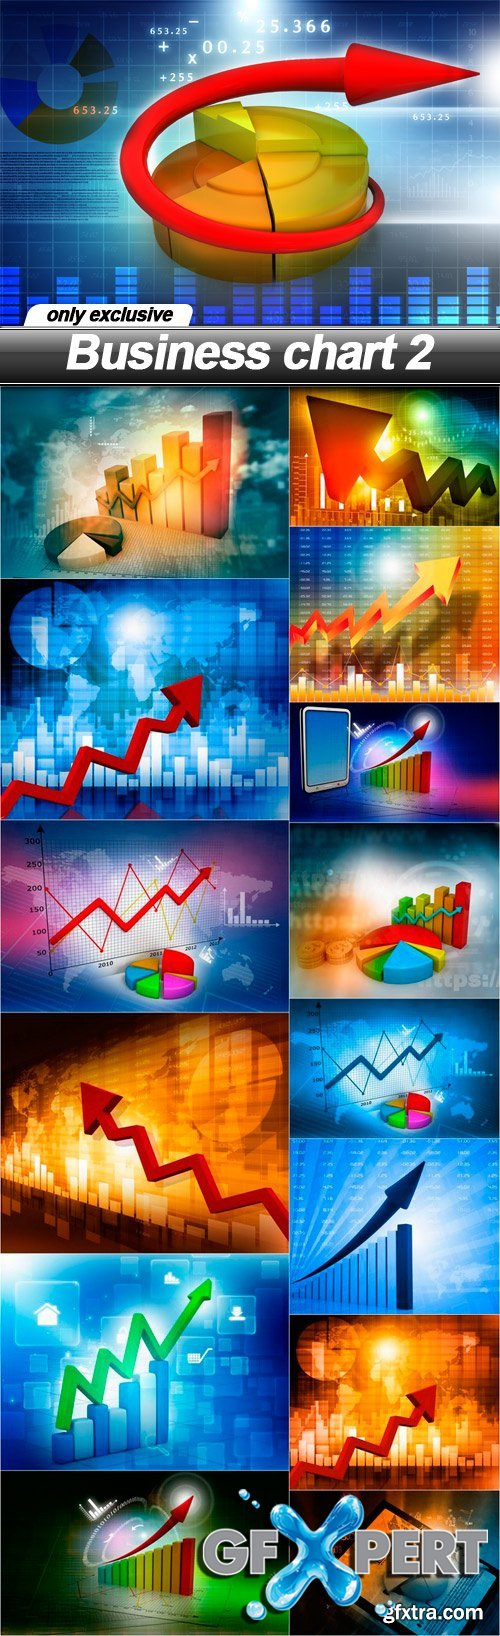 Business chart 2 - 15 UHQ JPEG